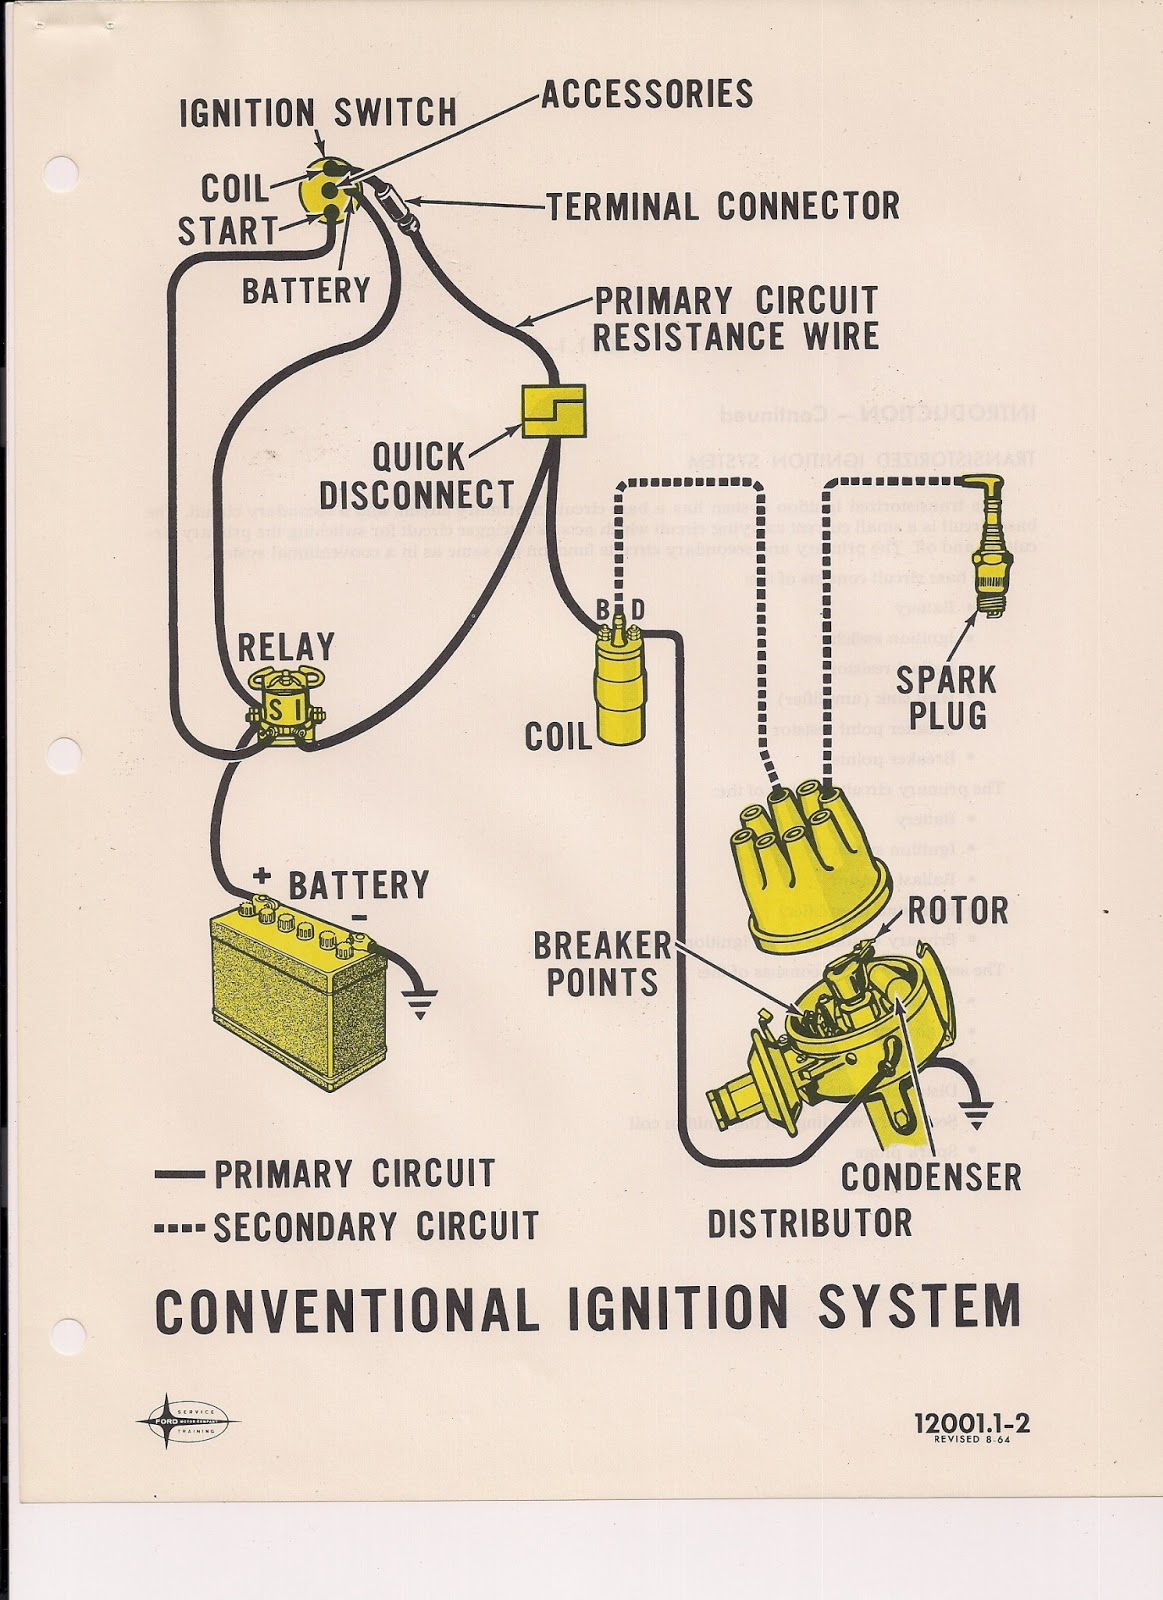 Ignition+1 the care and feeding of ponies mustang ignition system 1965 and 1966 65 mustang engine wiring diagram at soozxer.org